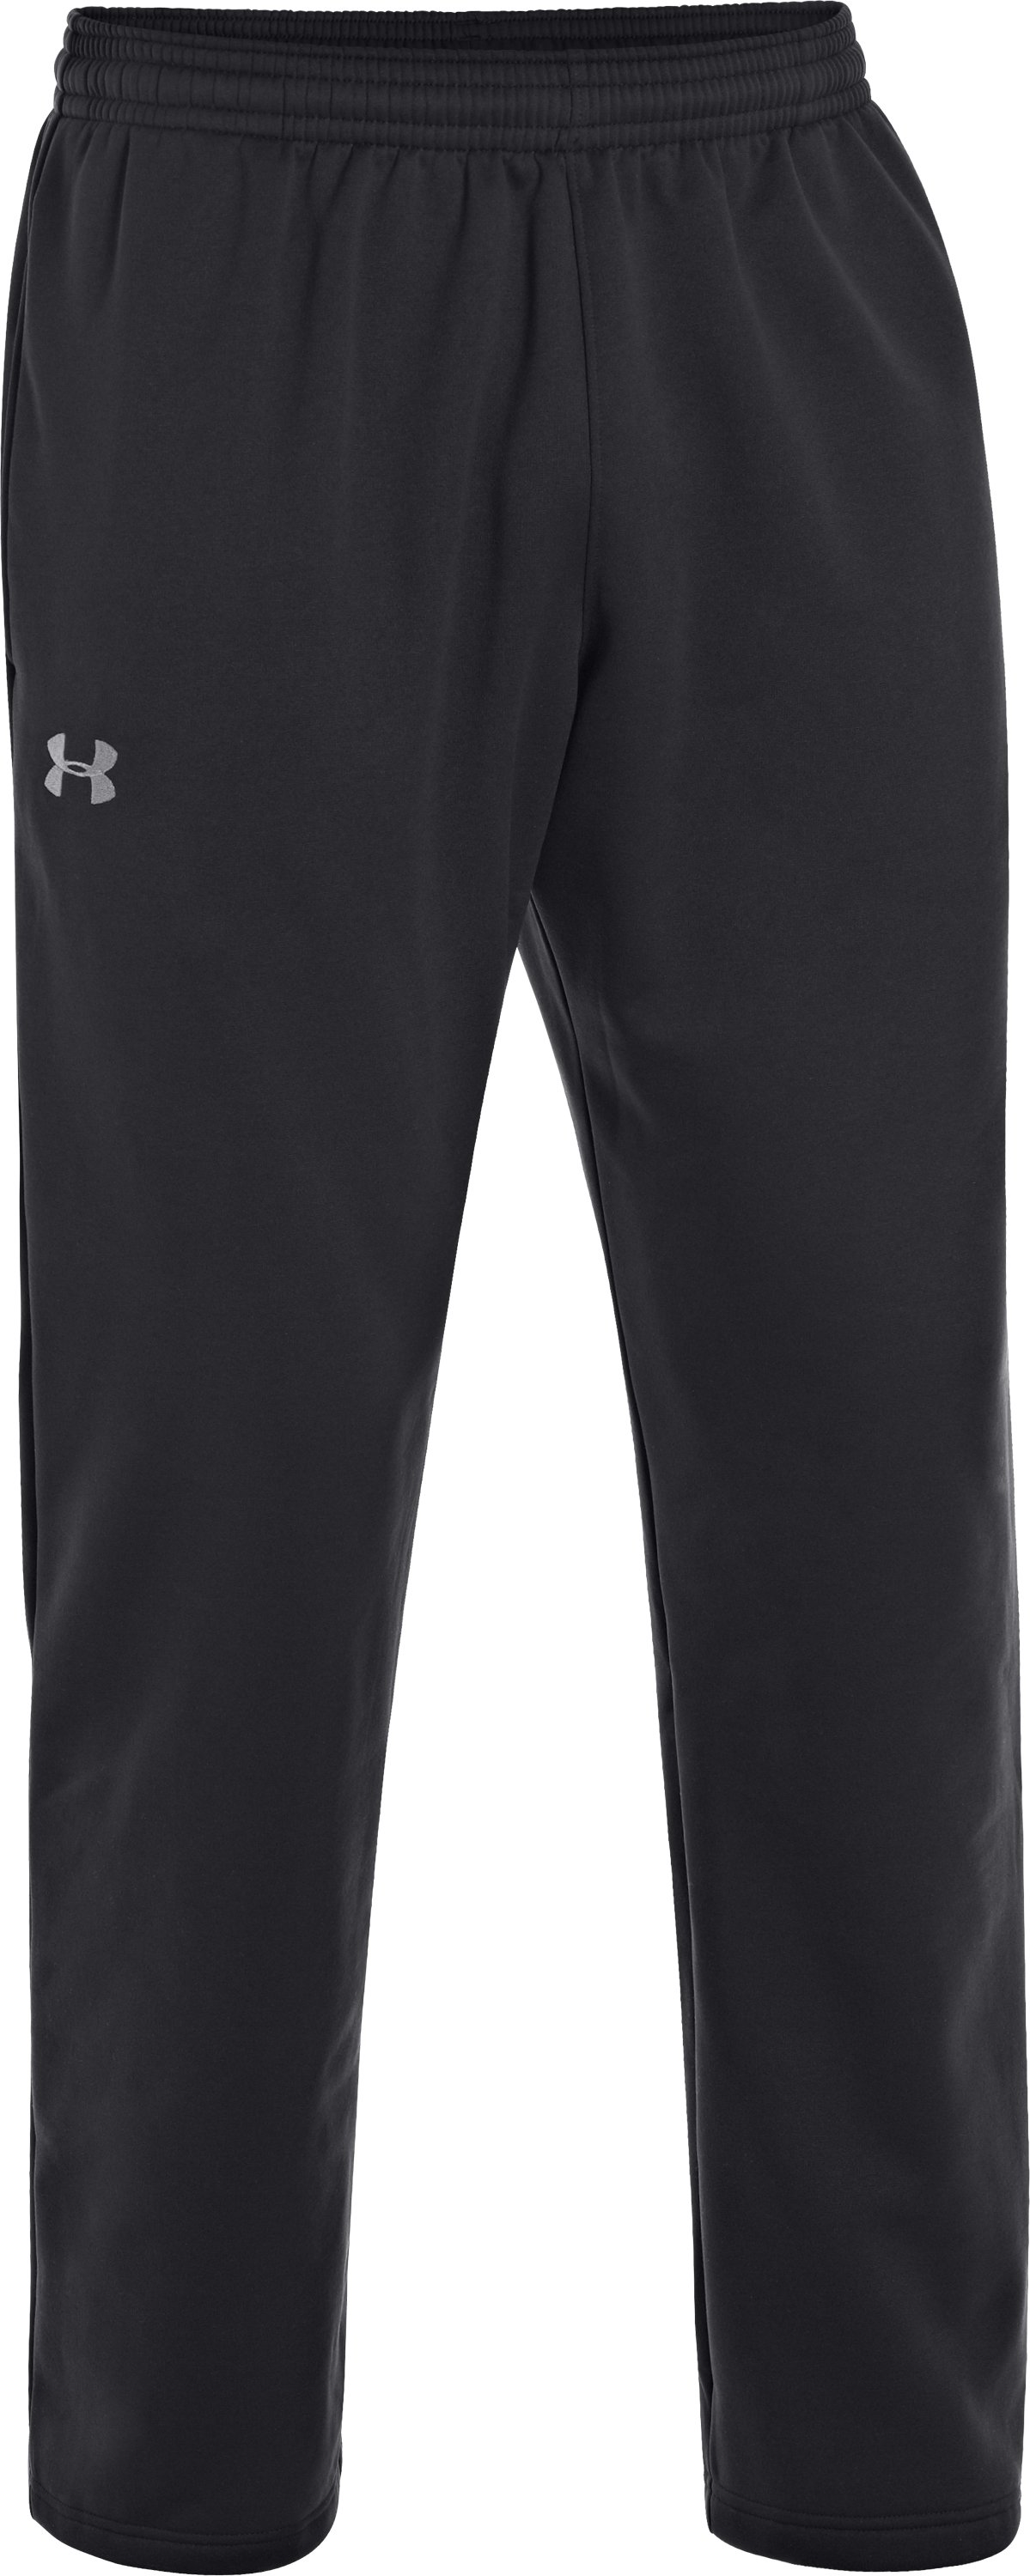 Men's Armour® Fleece Storm Pants, Black , undefined